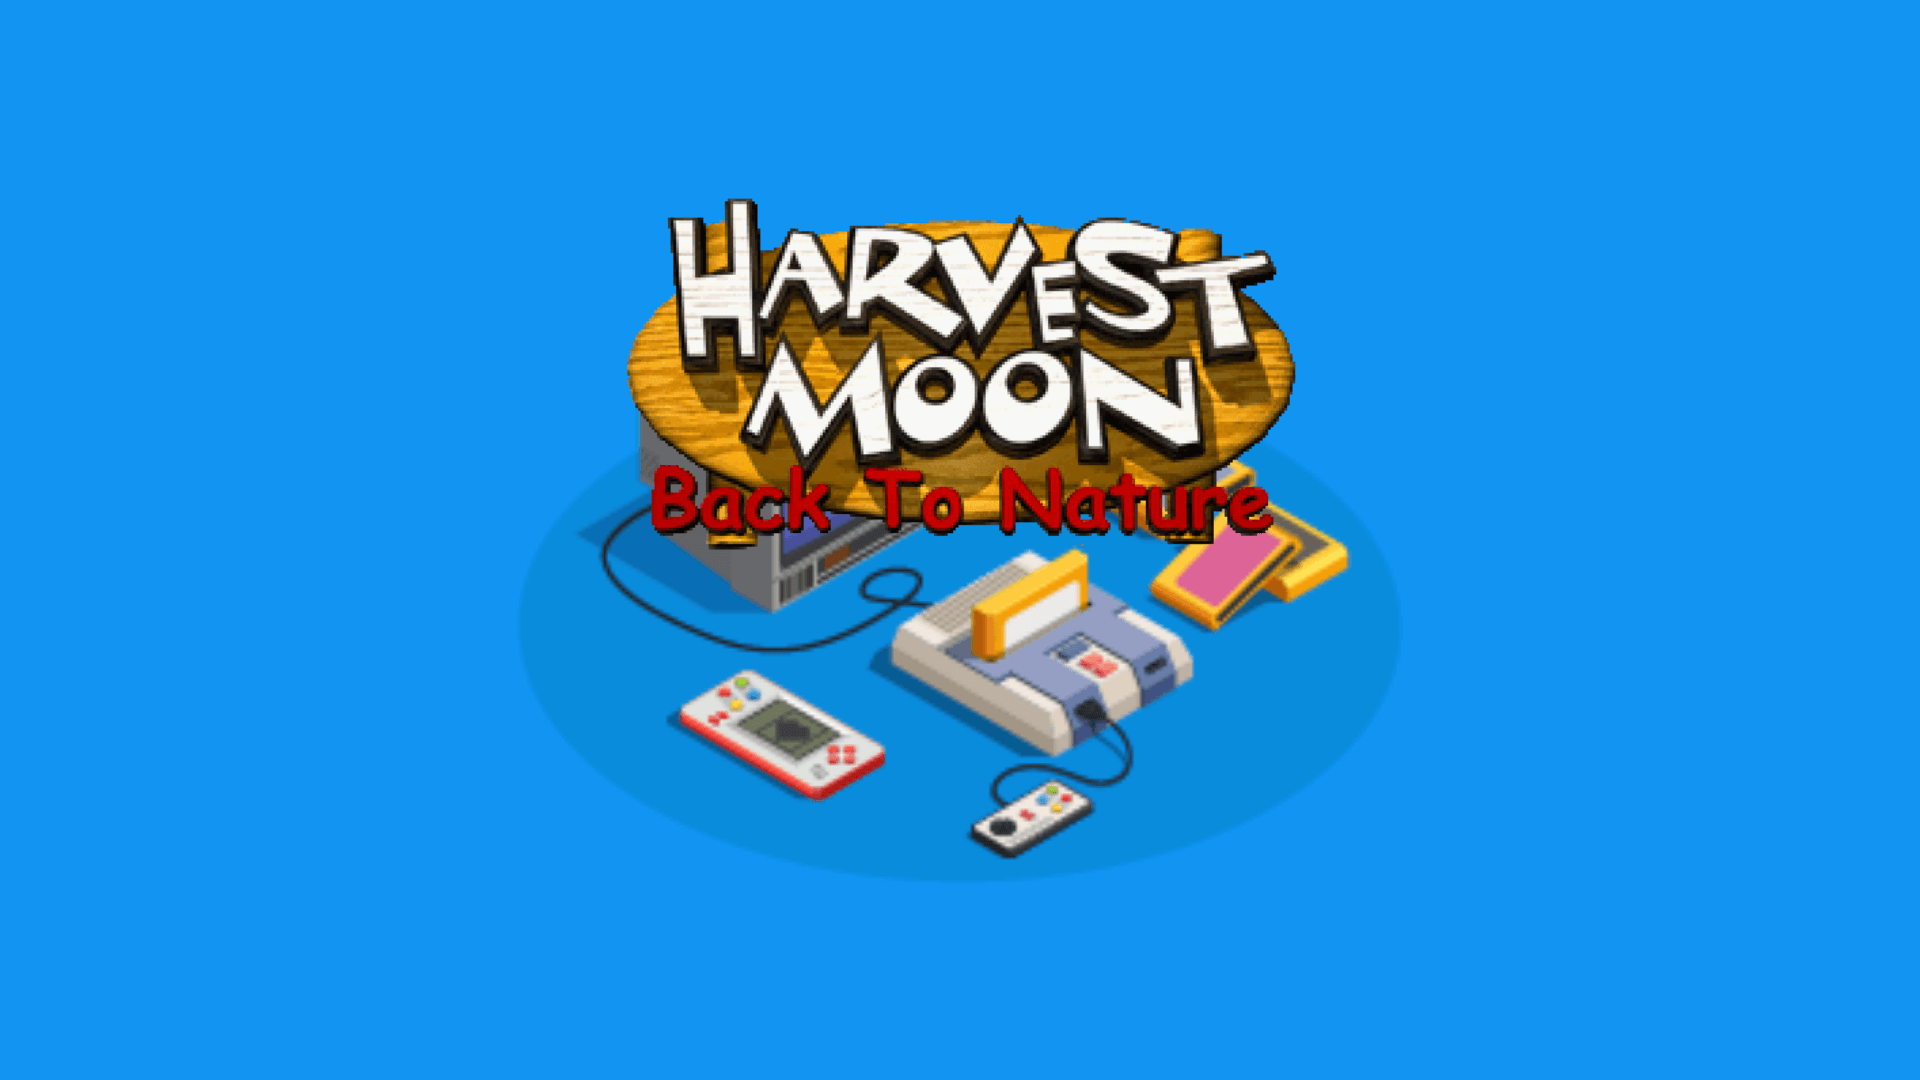 Cara instal Harvest Moon Back To Nature Di Android